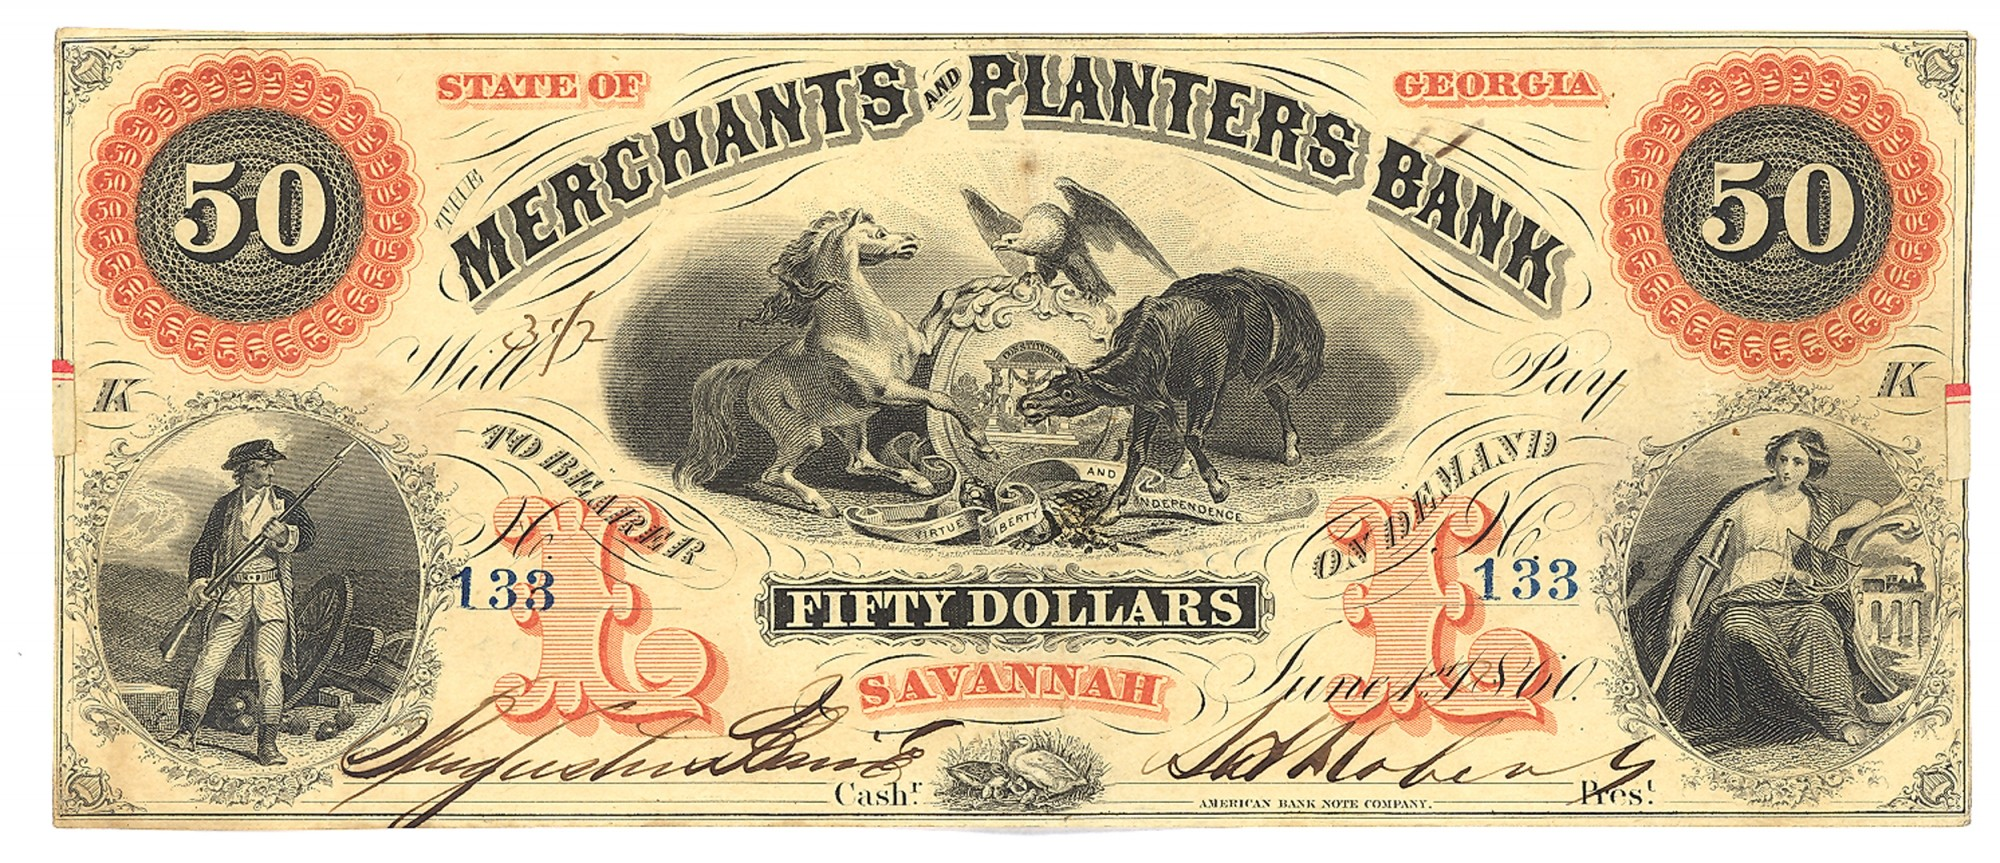 MERCHANTS AND PLANTERS BANK, SAVANNAH, GEORGIA, $50 NOTE